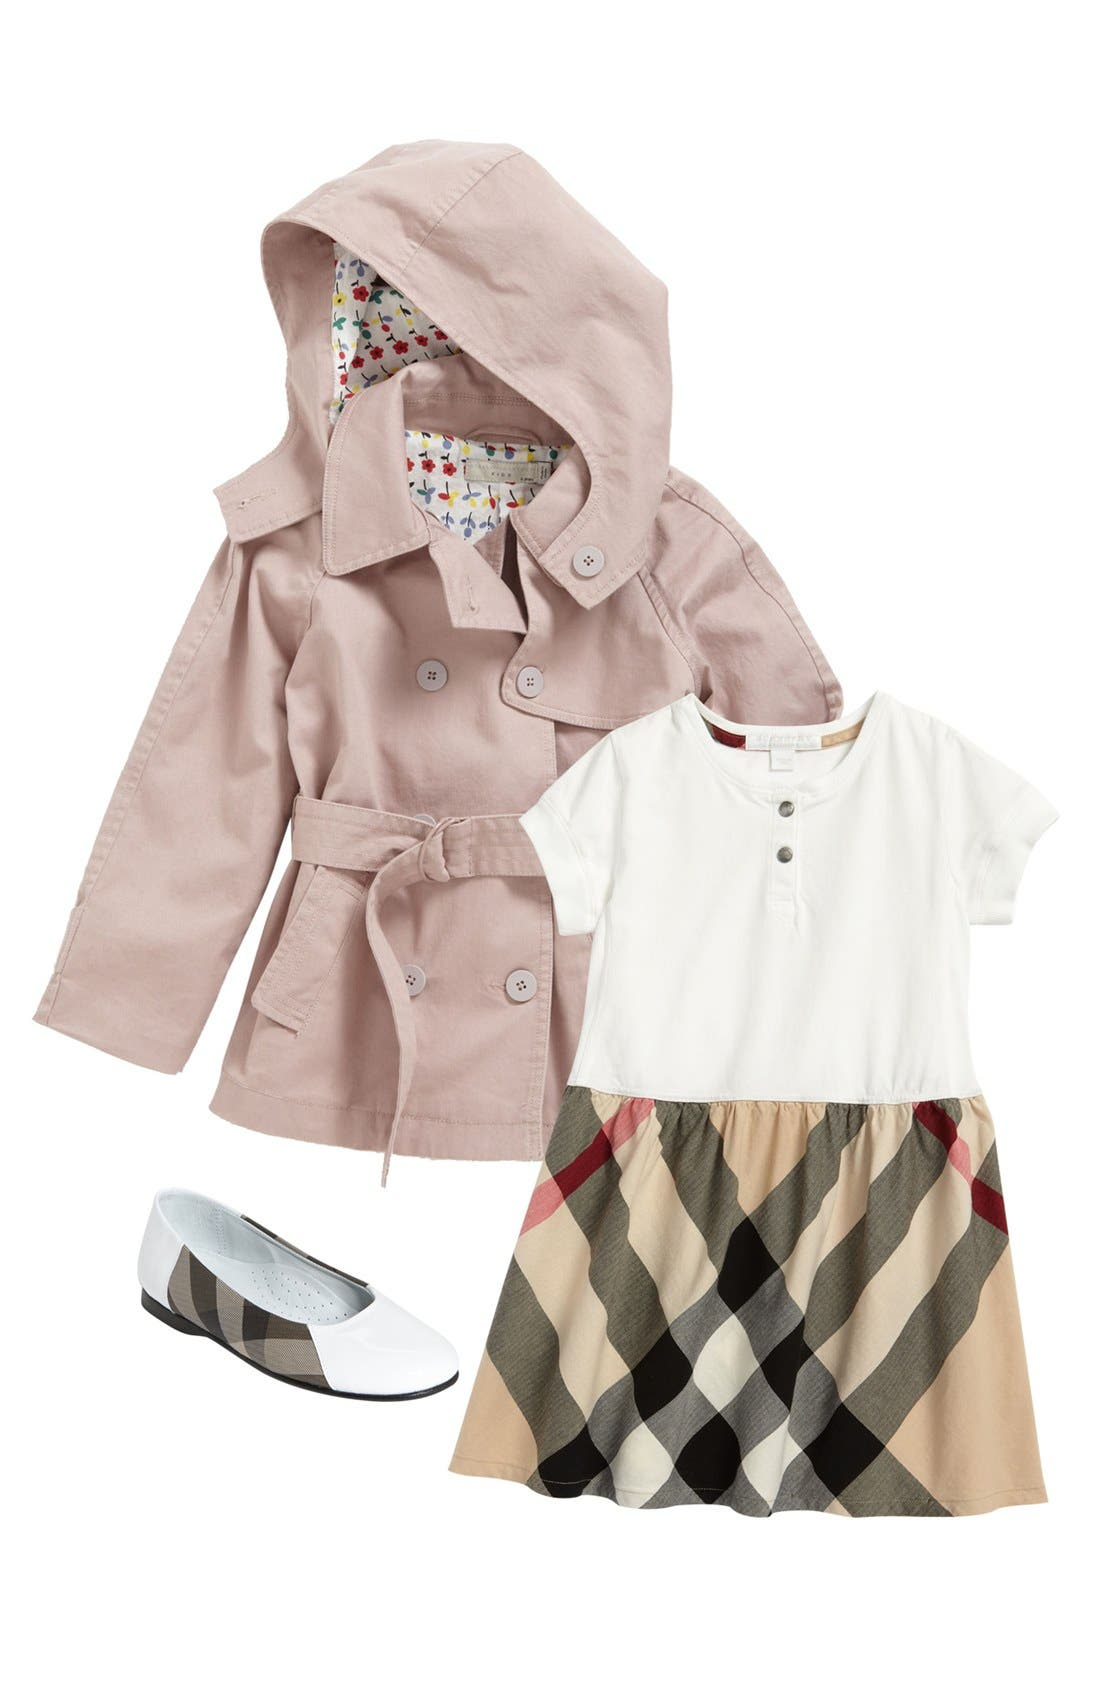 Alternate Image 1 Selected - Burberry Dress & Stella McCartney Trench Coat (Toddler)